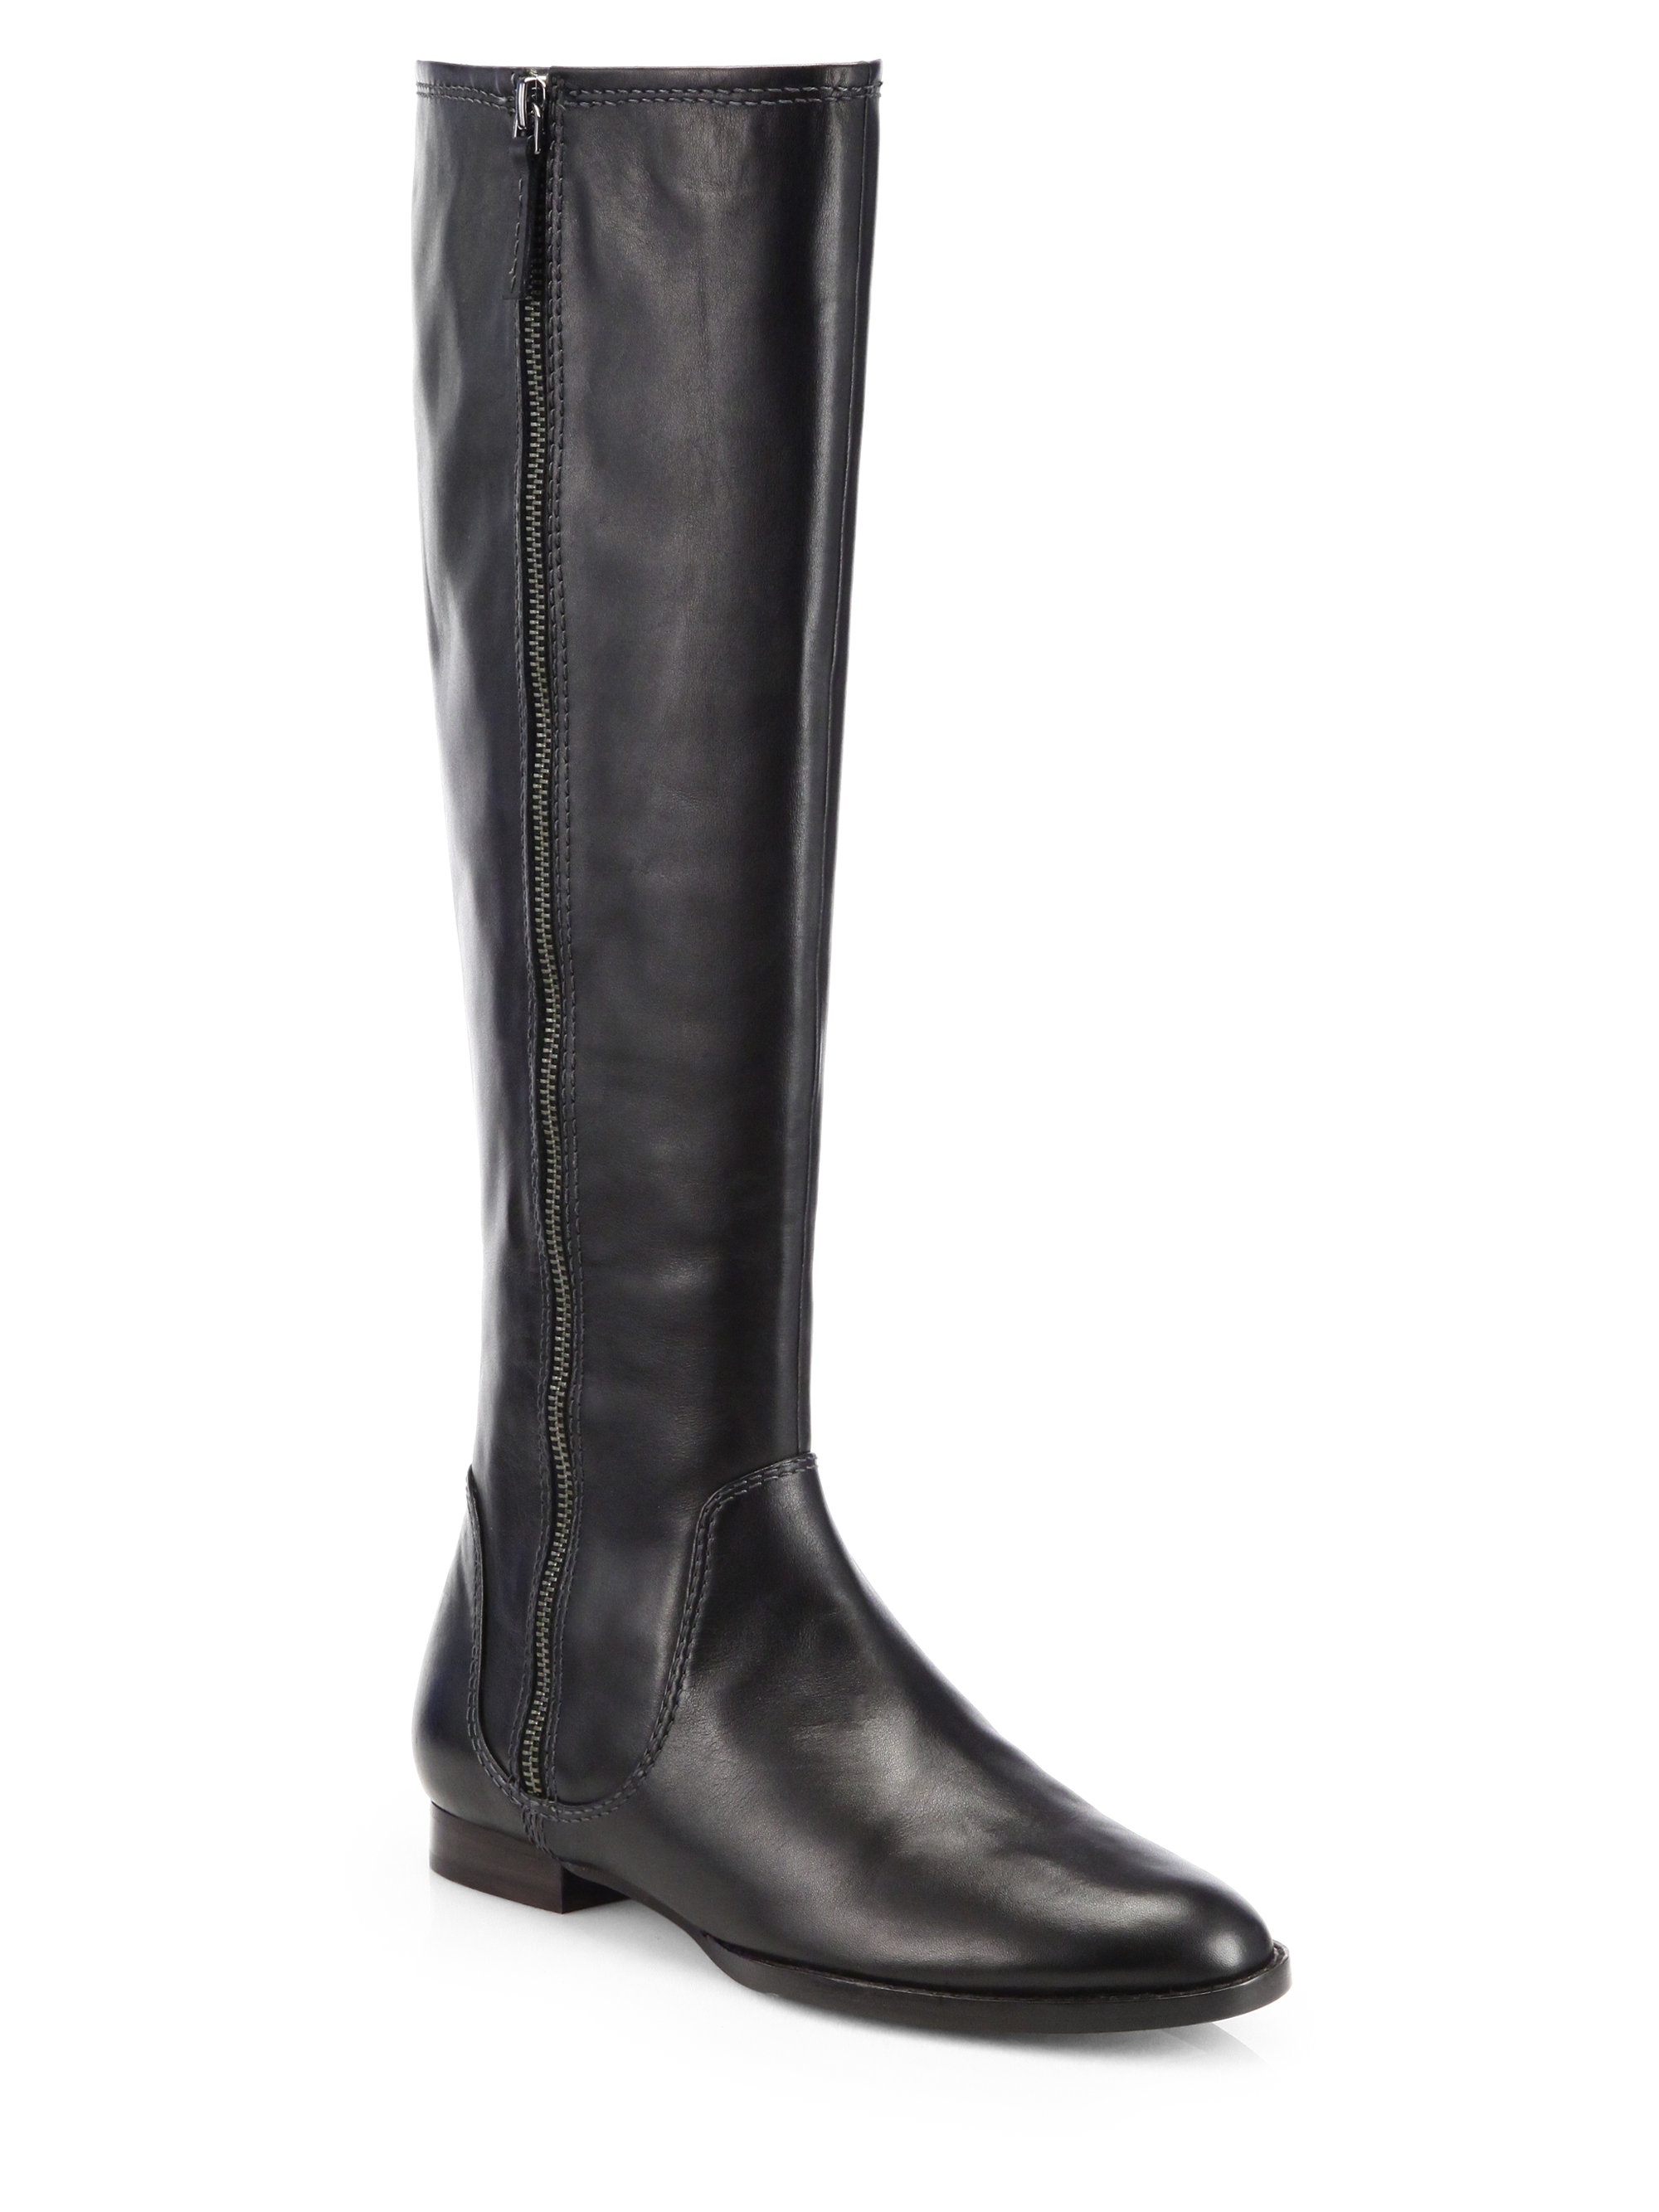 elie tahari rover leather boots in black lyst